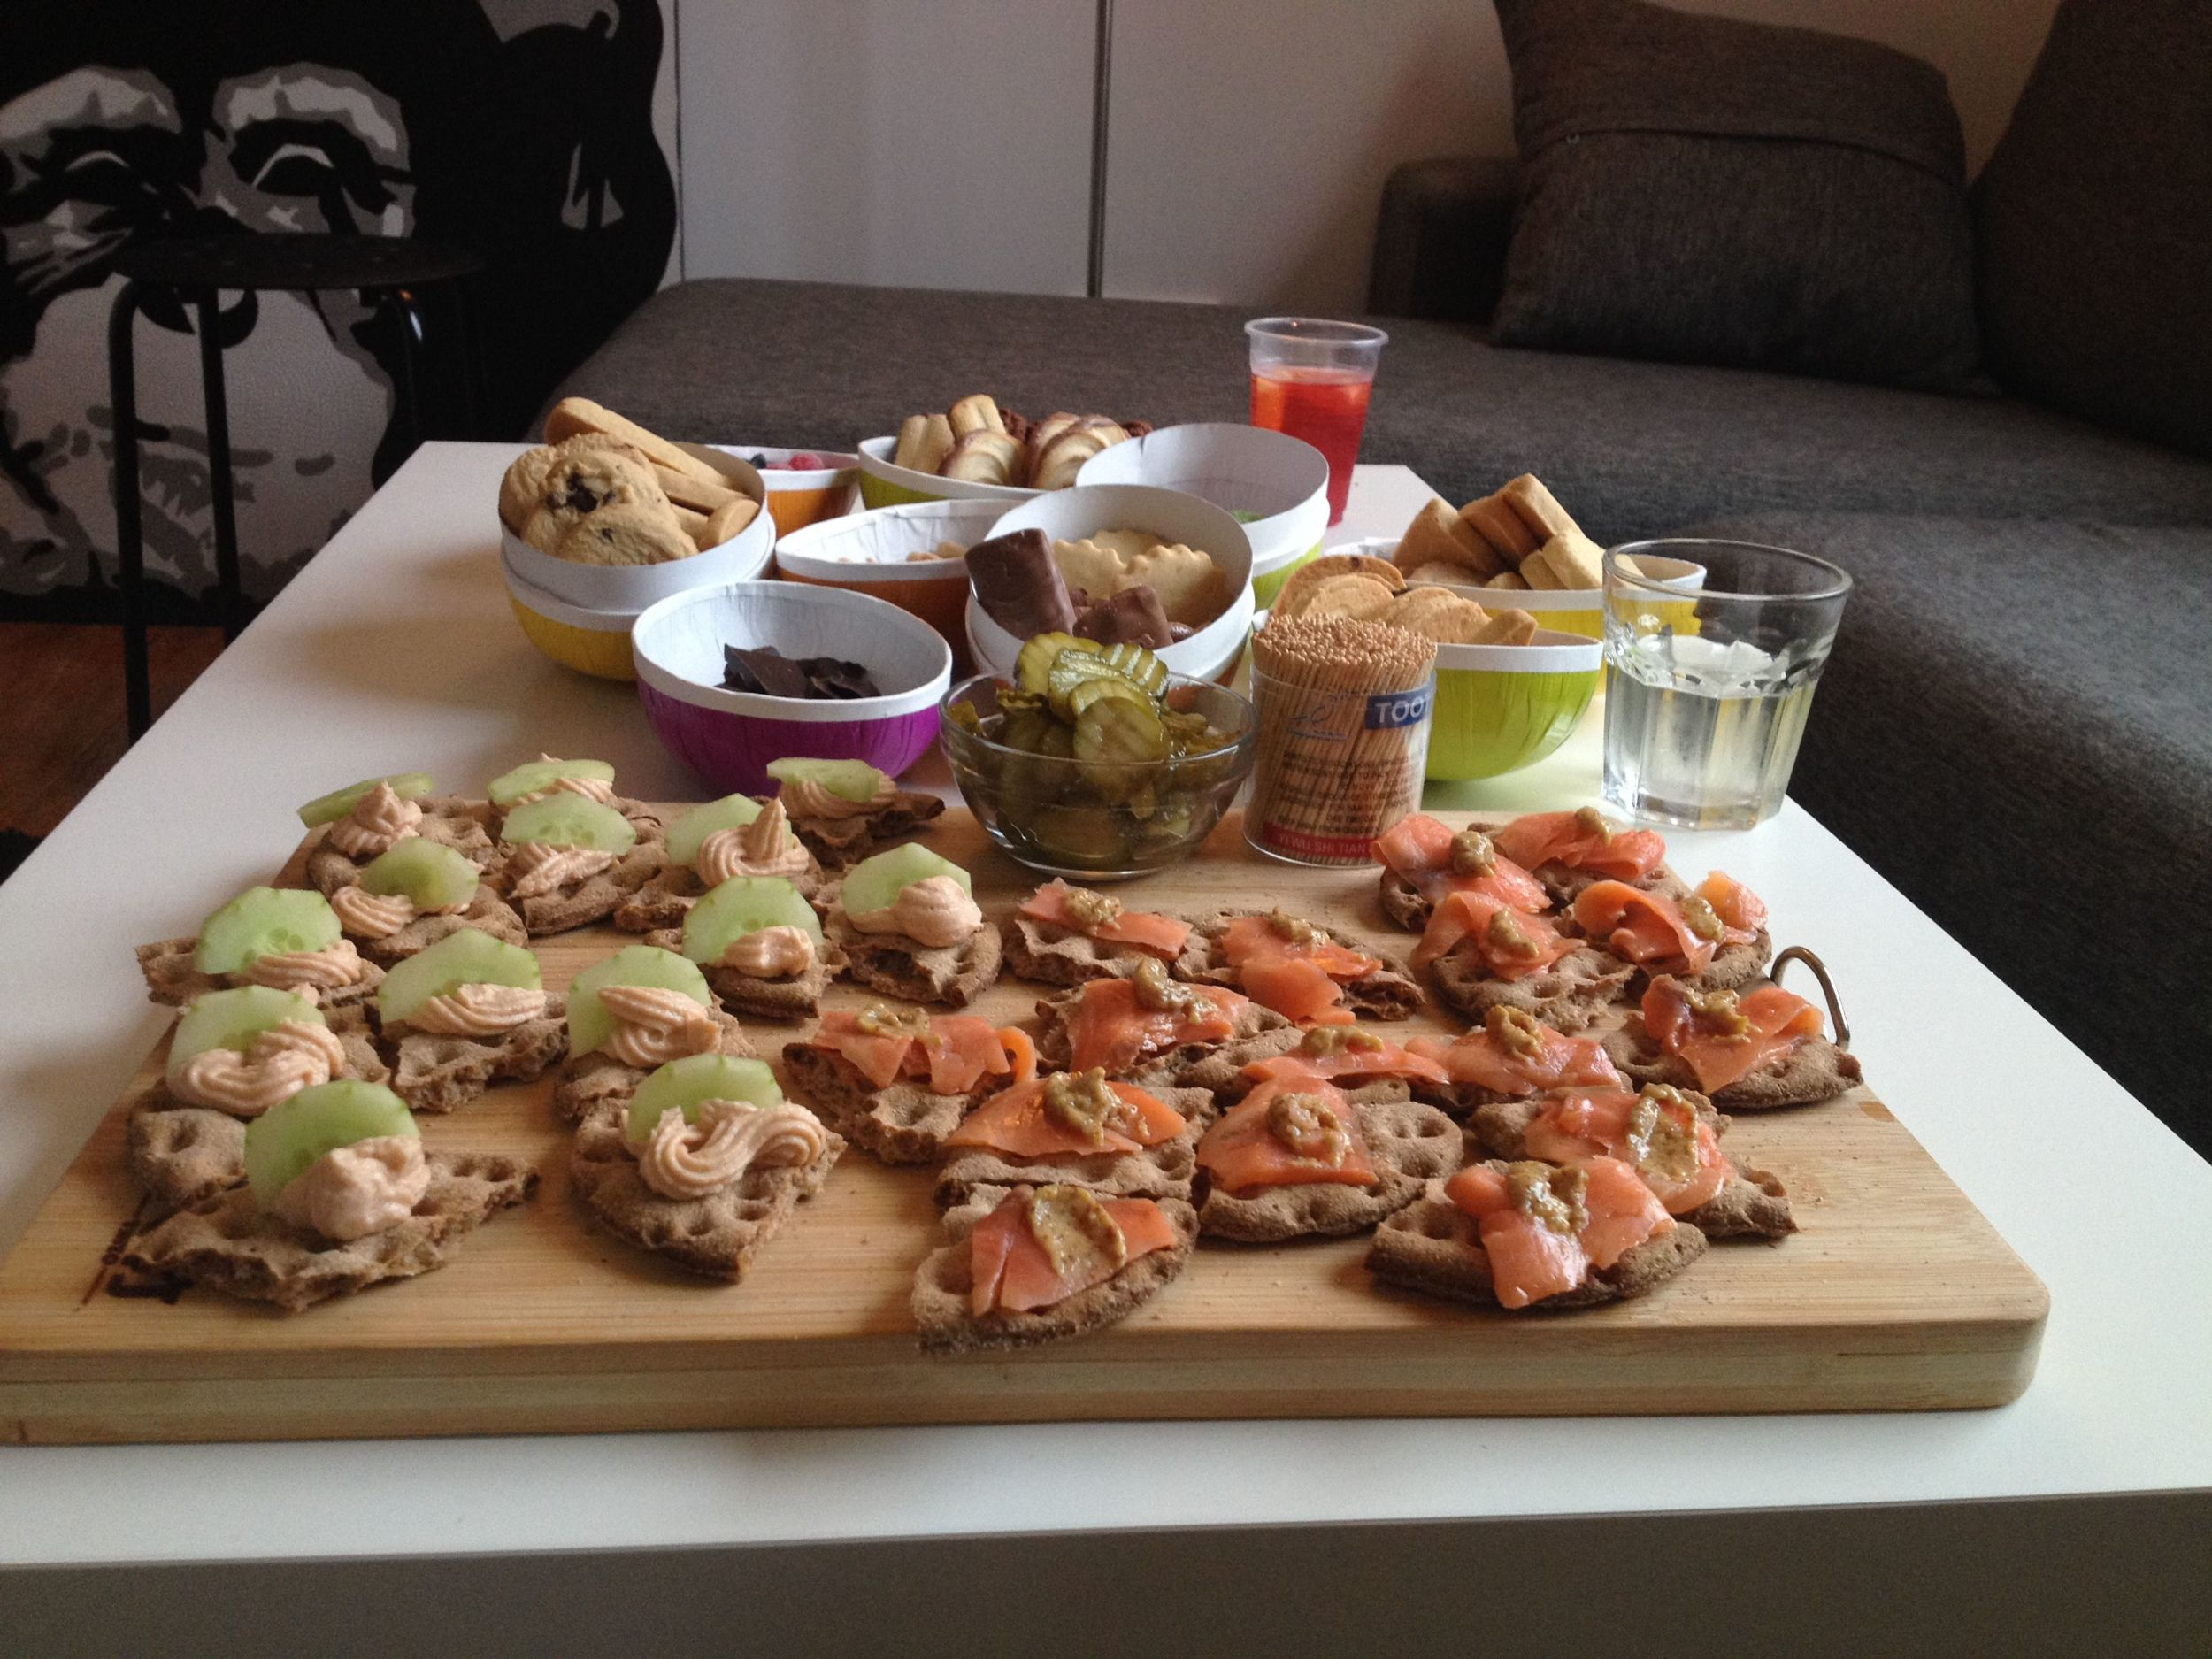 Thanks to Ikea's Swedish foodstore it was possible for us to do a little magic in the kitchen and serve delicious Scandi Snacks